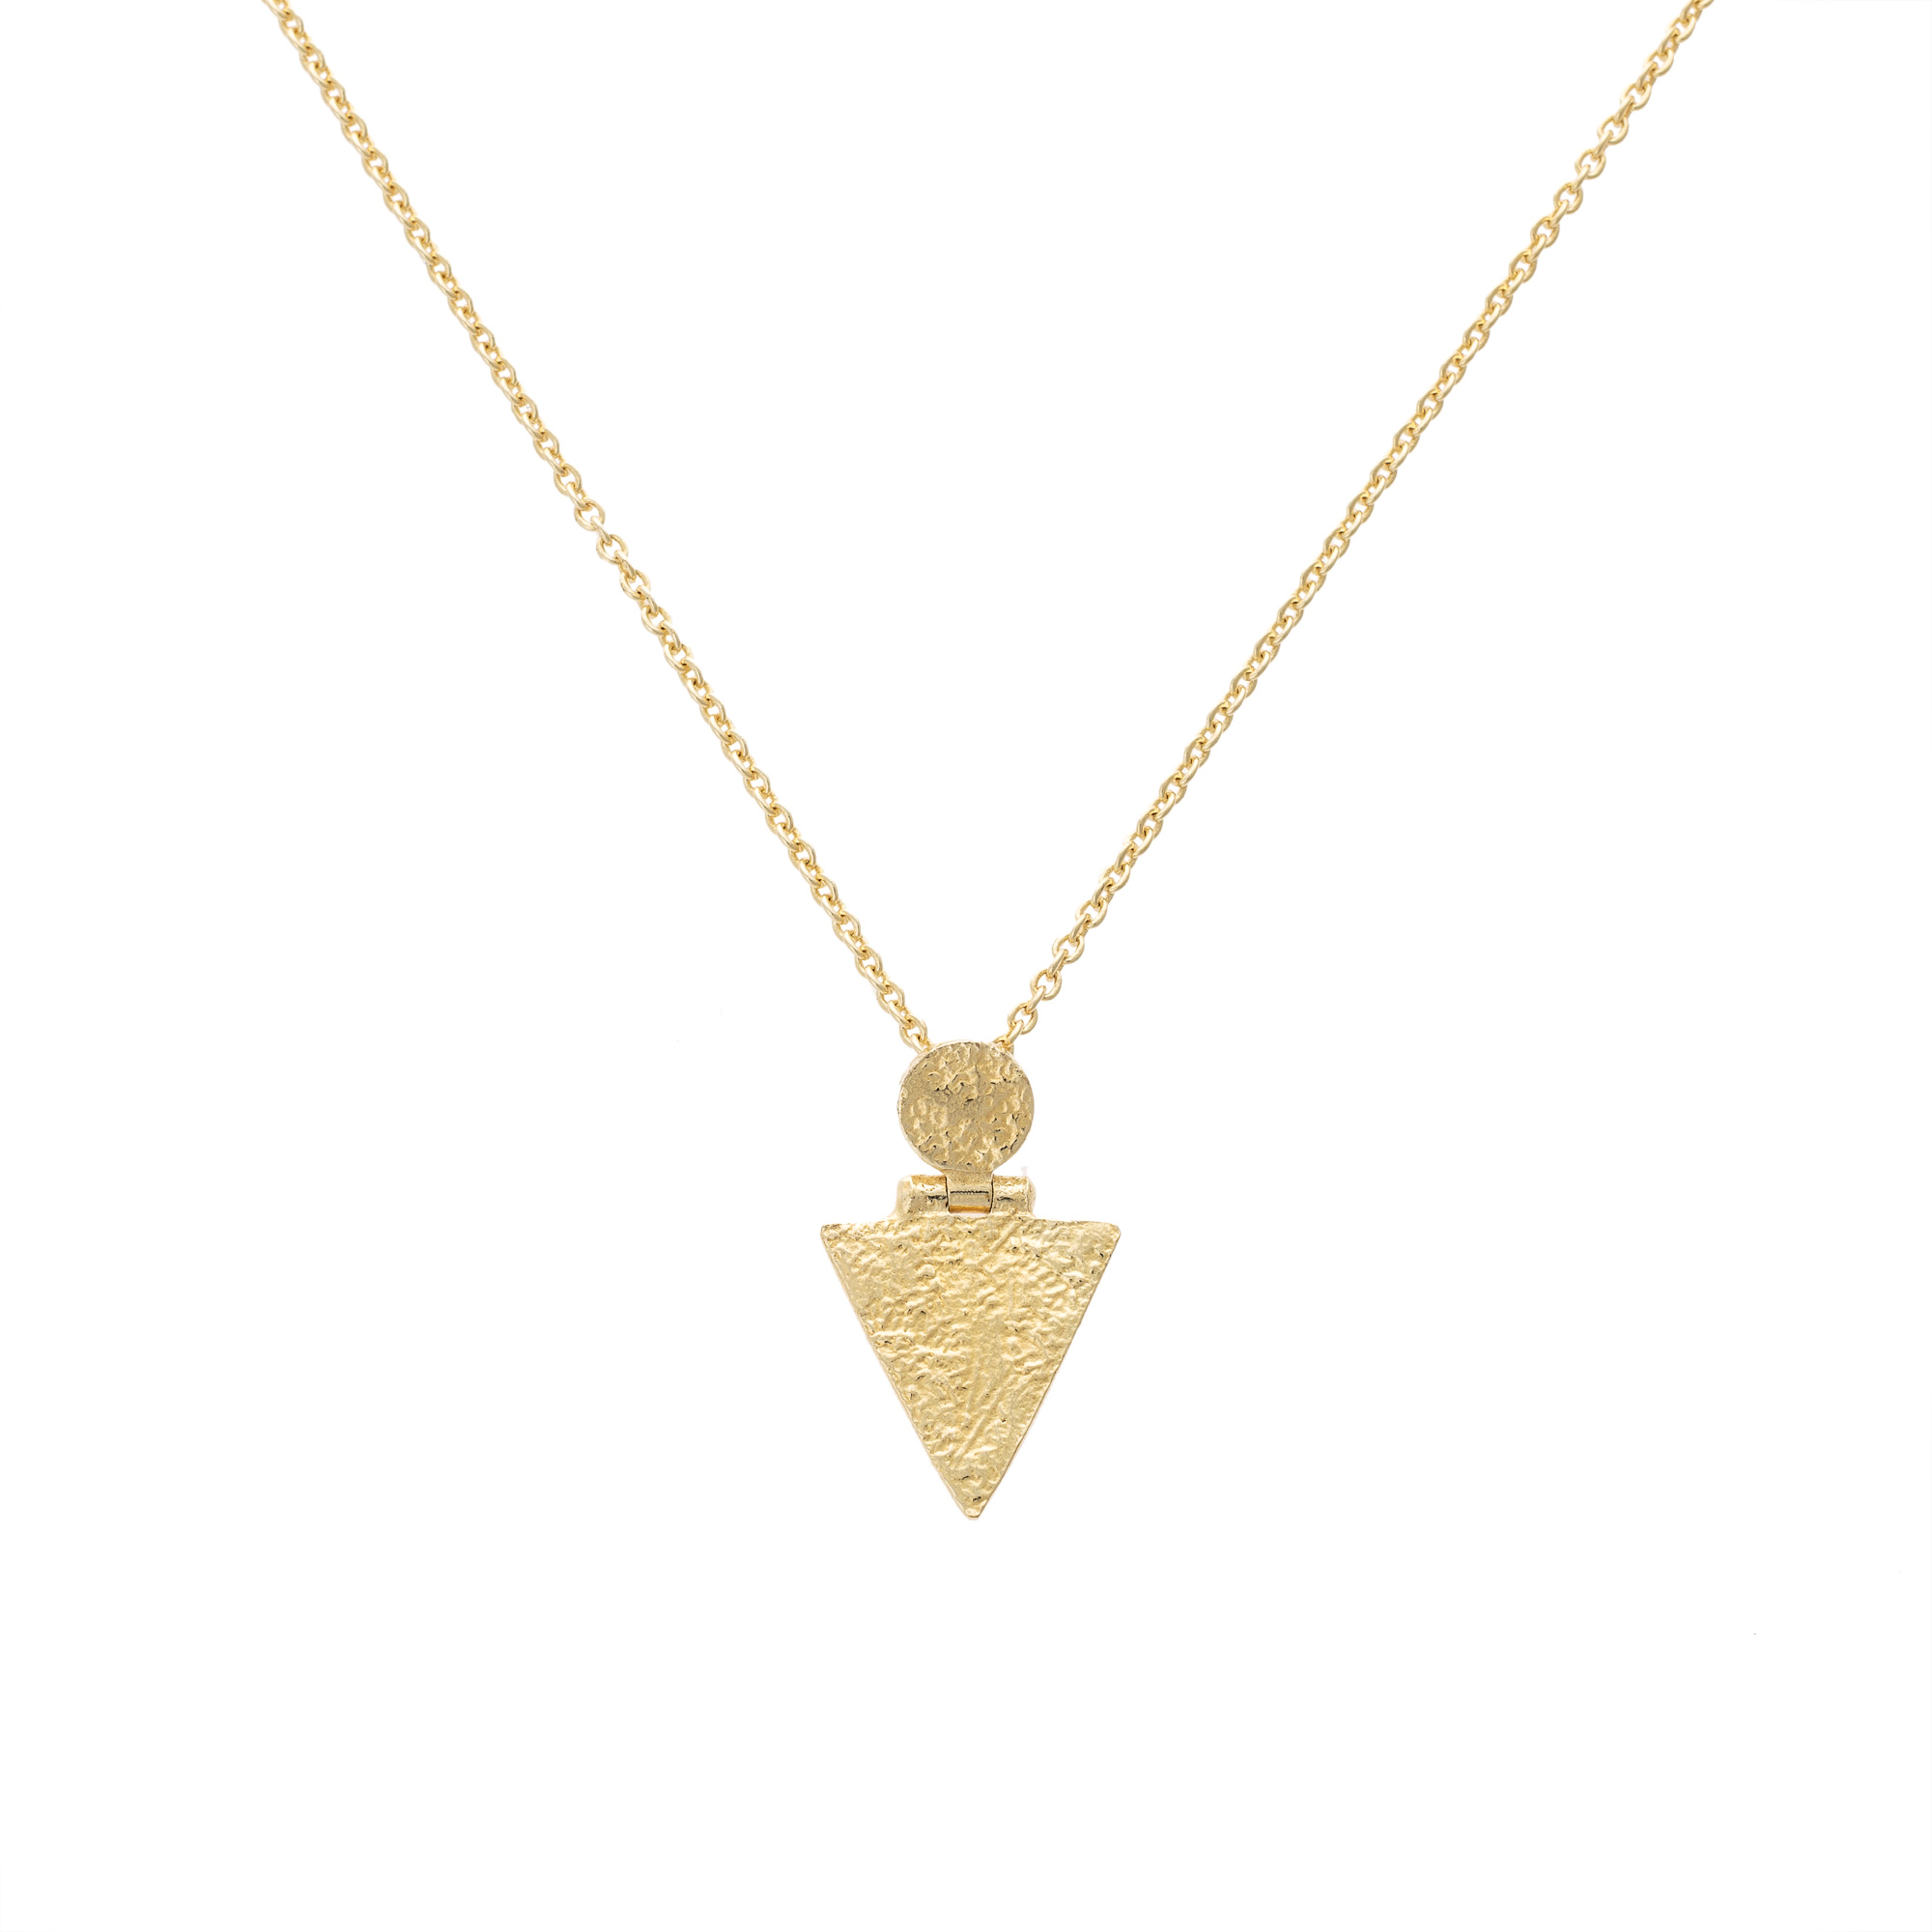 Necklaces pendants oliver bonas zosk circle triangle pendant necklace aloadofball Image collections